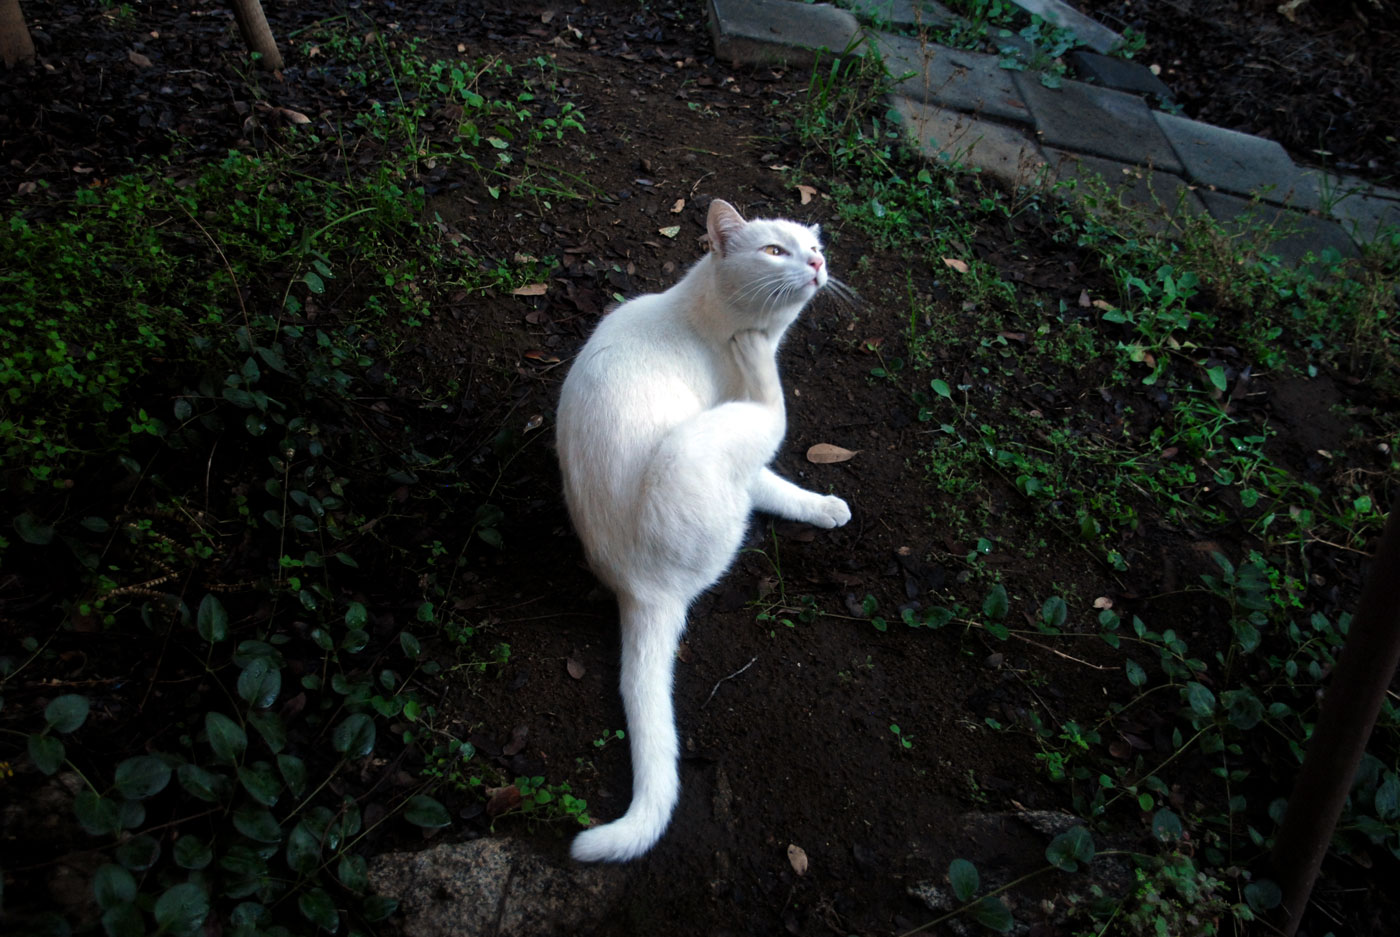 WhiteKitty_web2016.jpg